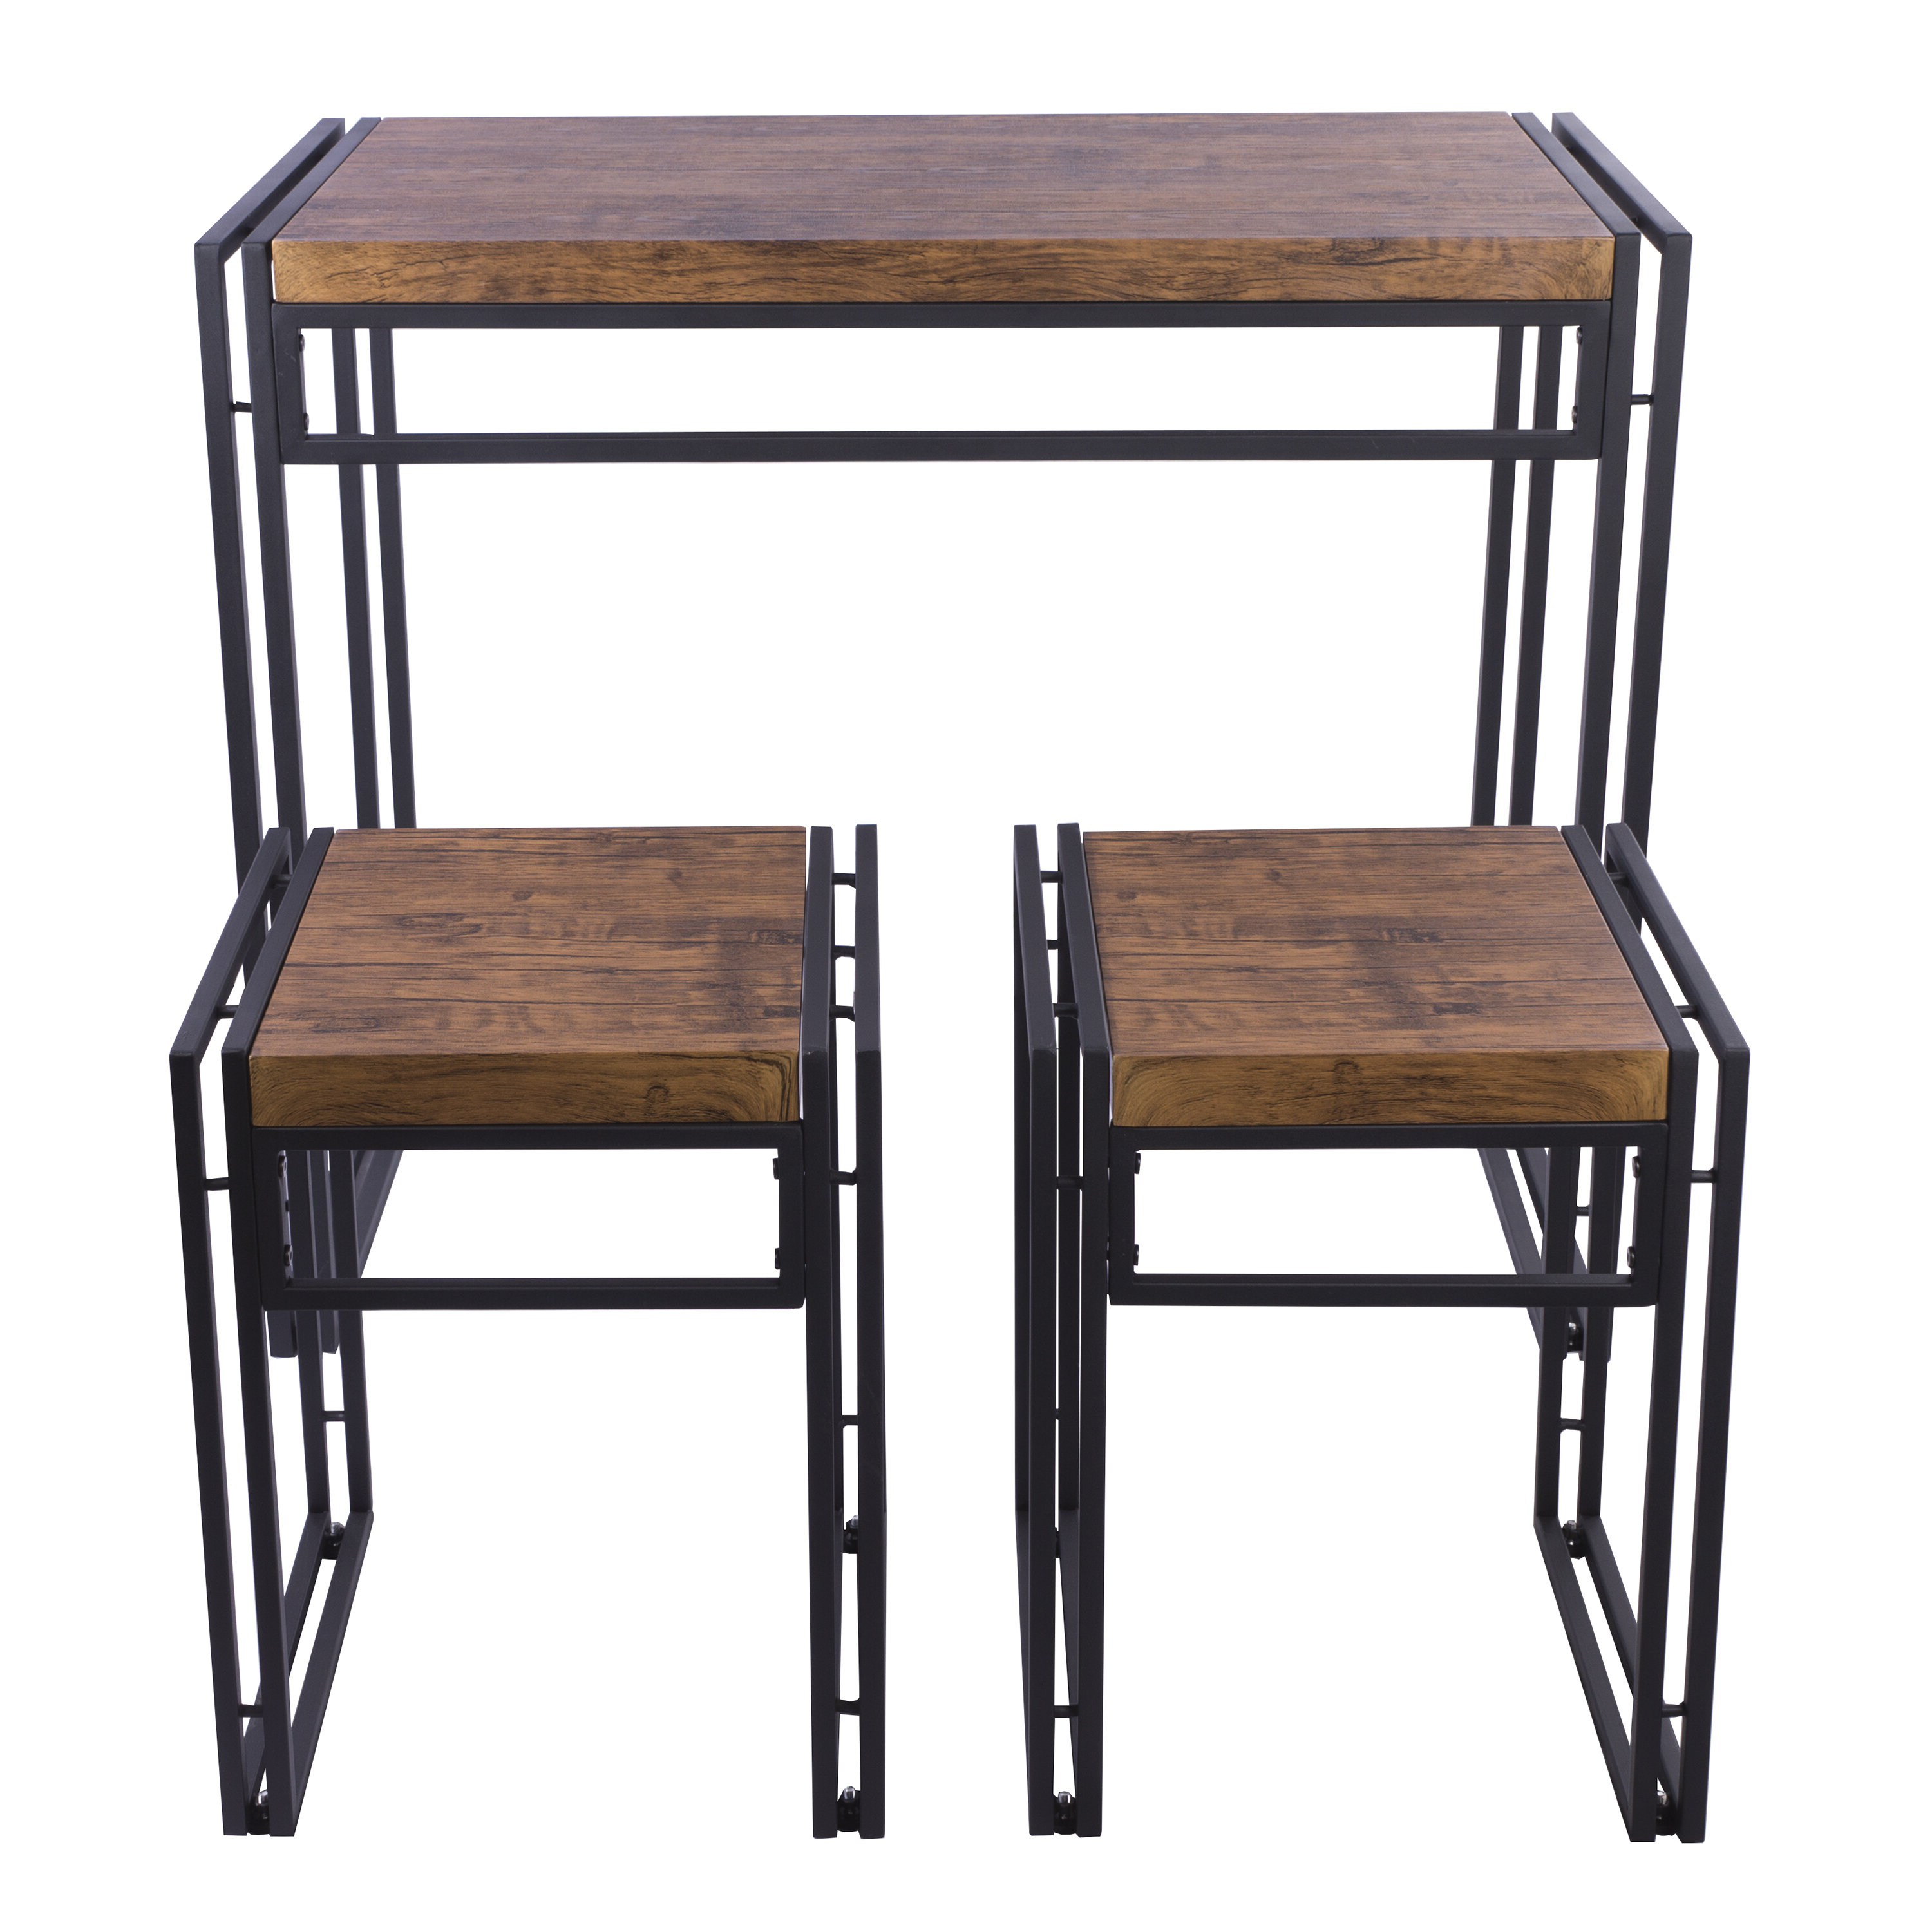 Williston Forge Debby Small Space 3 Piece Dining Set In Well Known Poynter 3 Piece Drop Leaf Dining Sets (View 19 of 20)